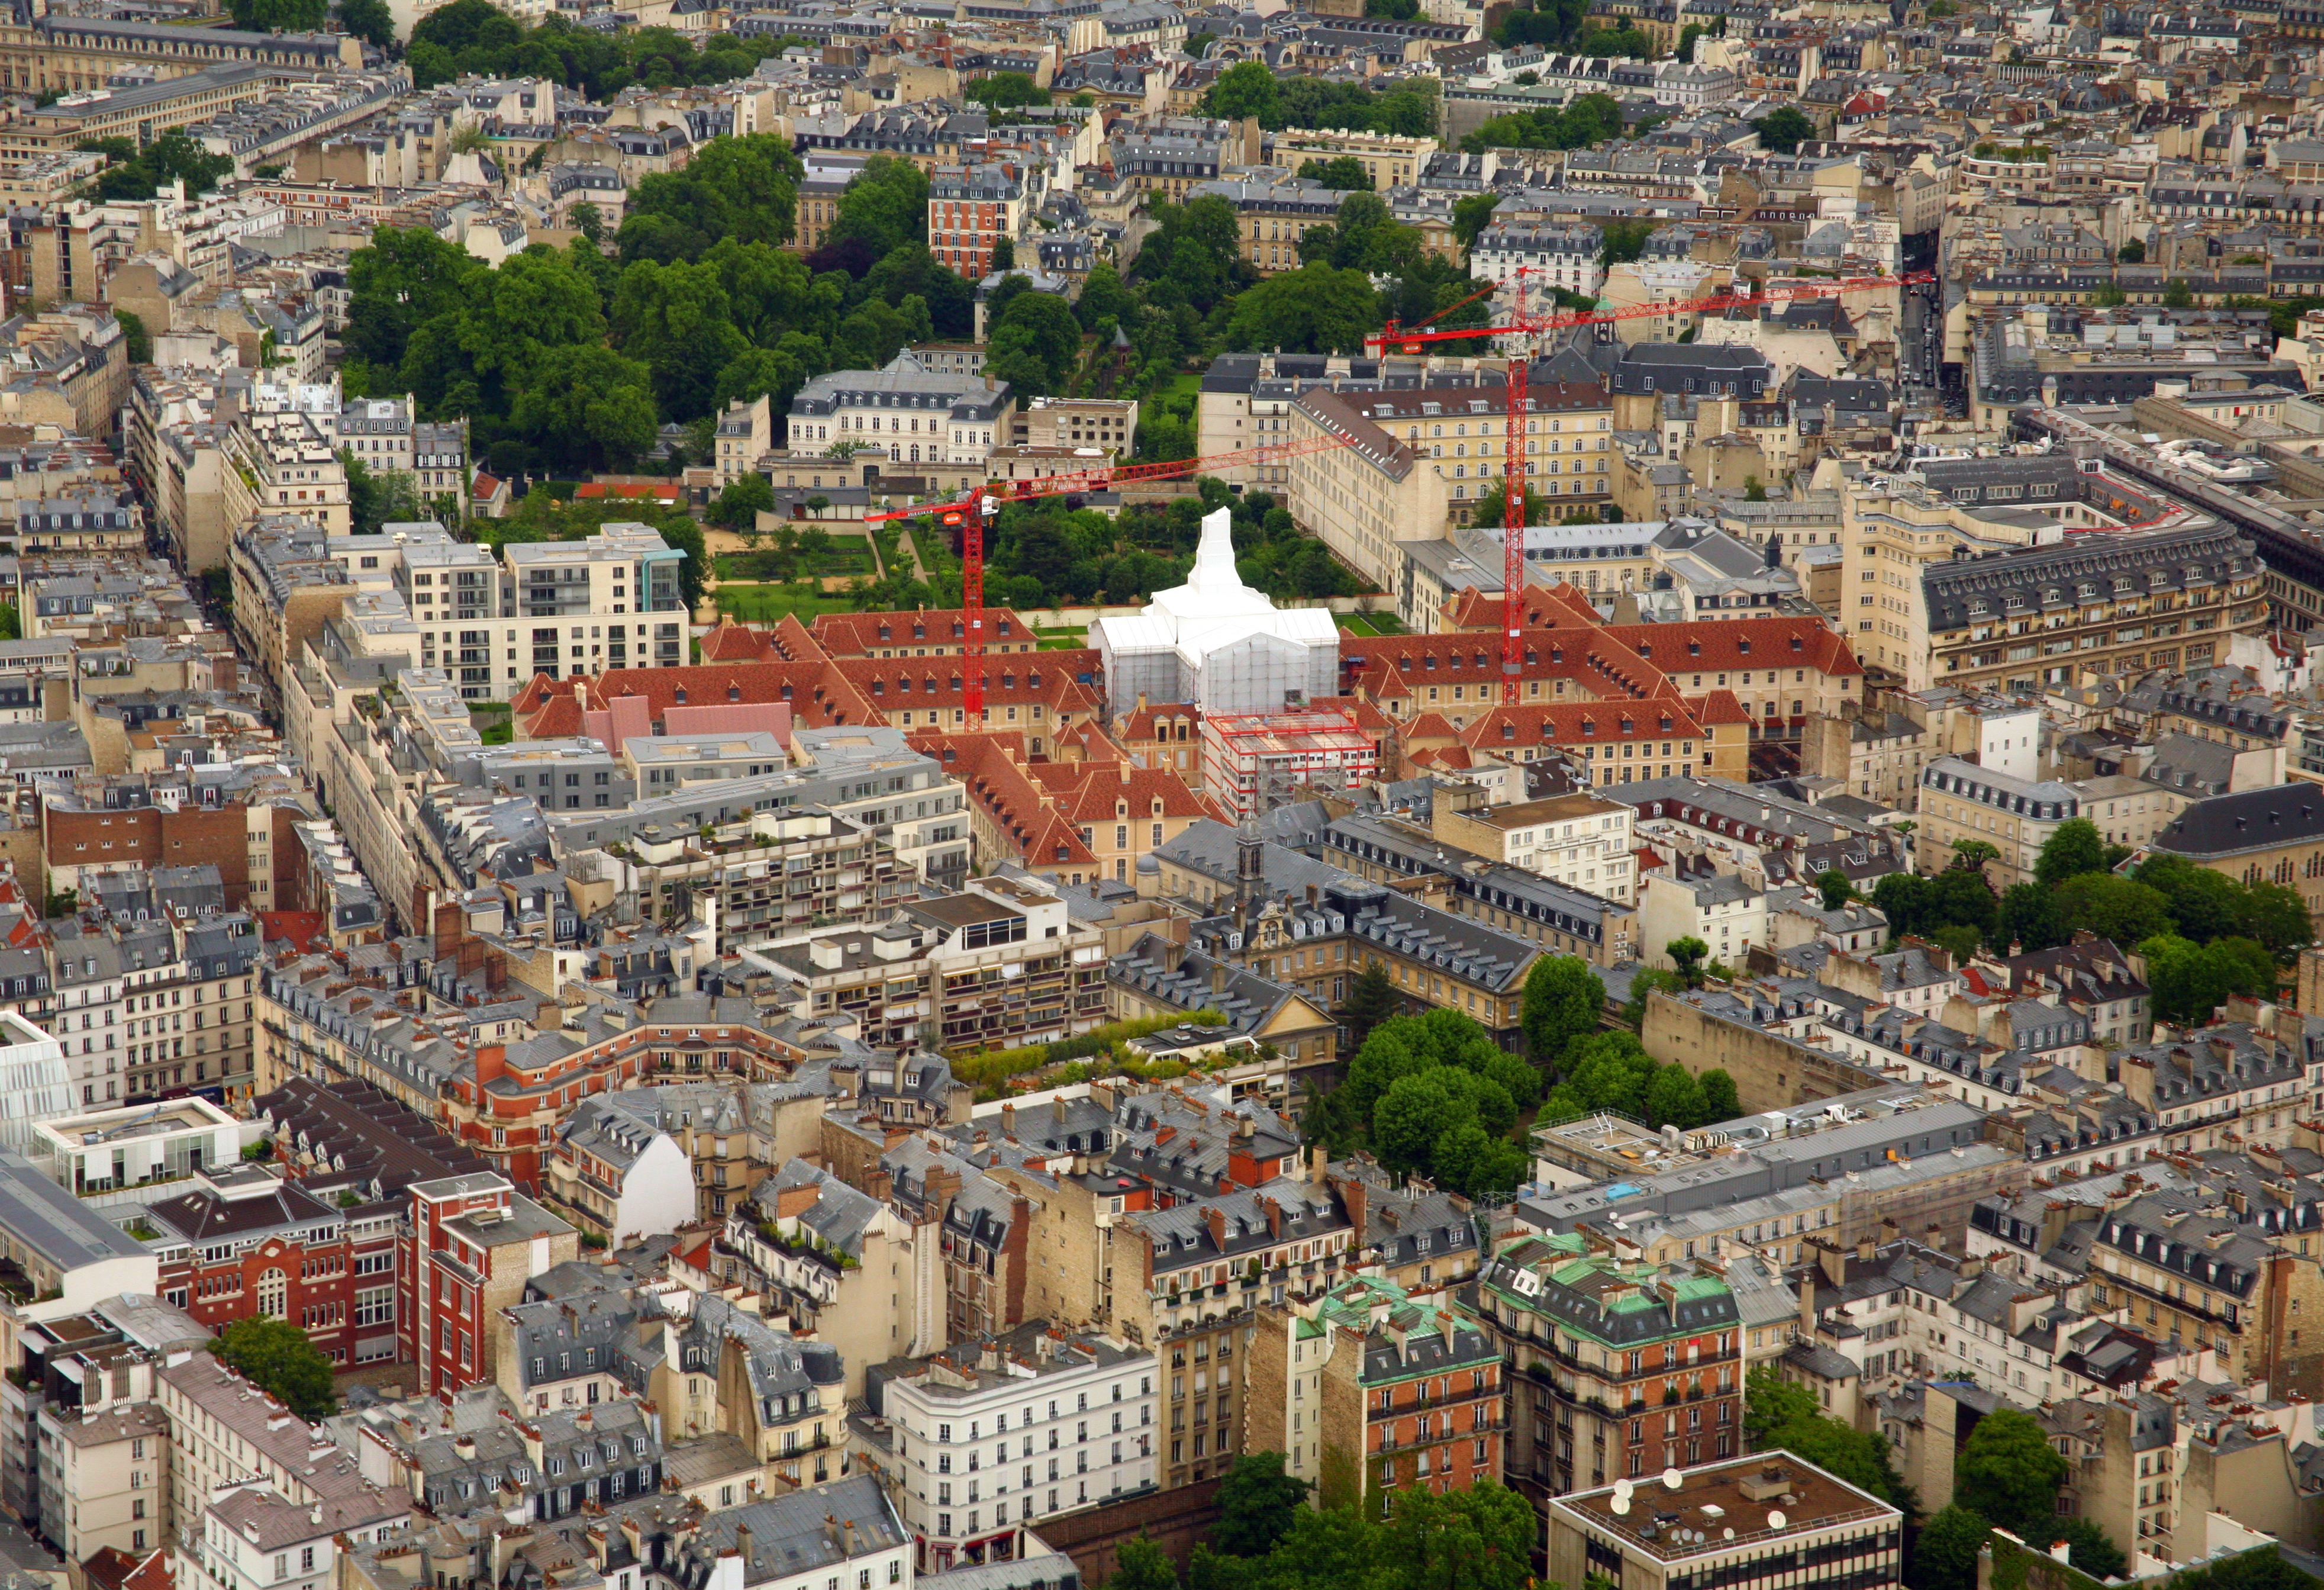 File:Hôpital Laennec from the Tour Montparnasse, Paris 20 May 2014.jpg - Wikimedia Commons - Hopital Laennec